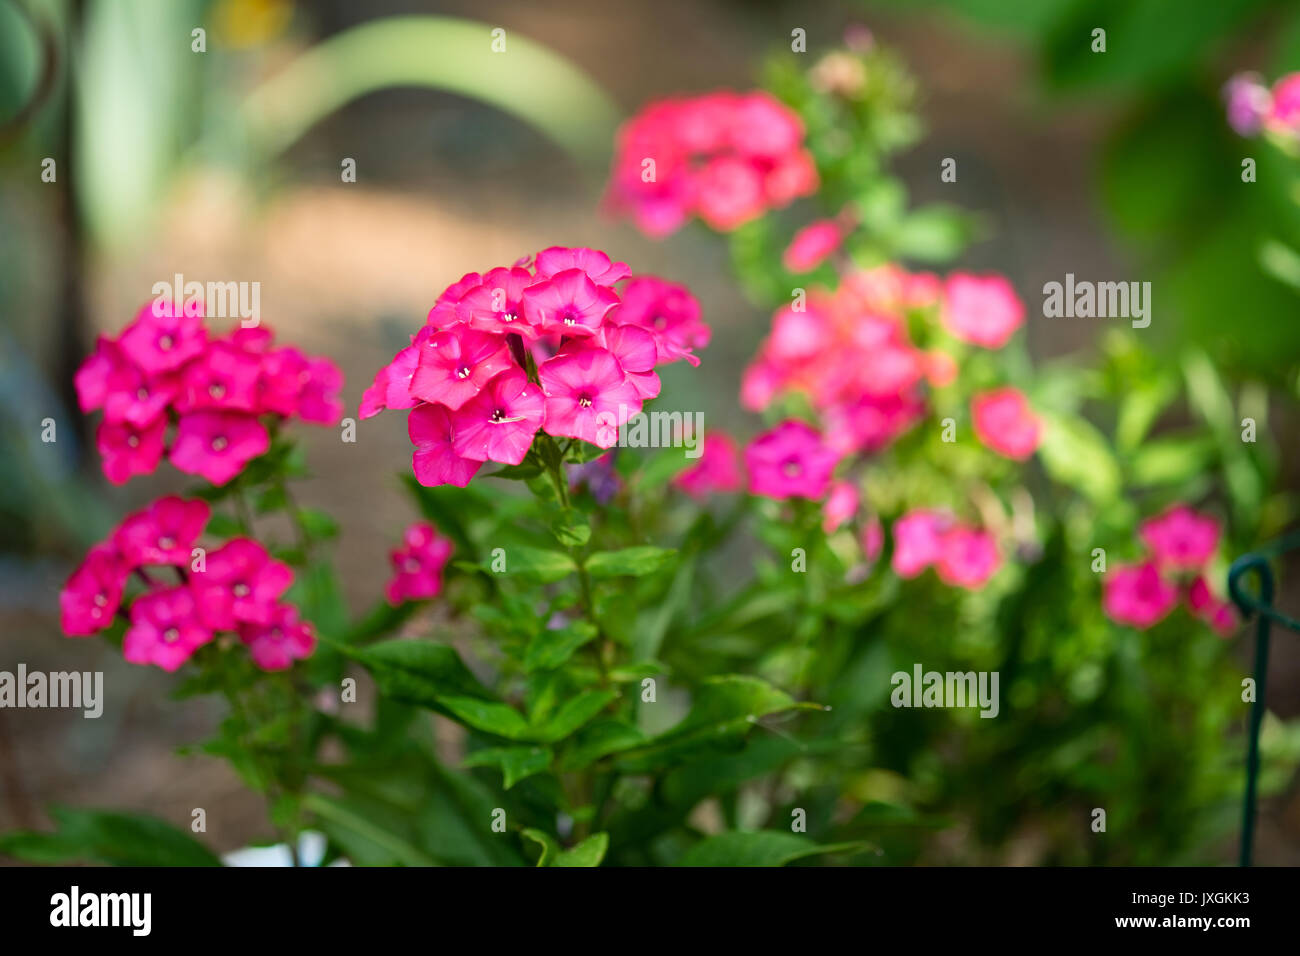 Tall garden phlox plants in a home garden setting. - Stock Image